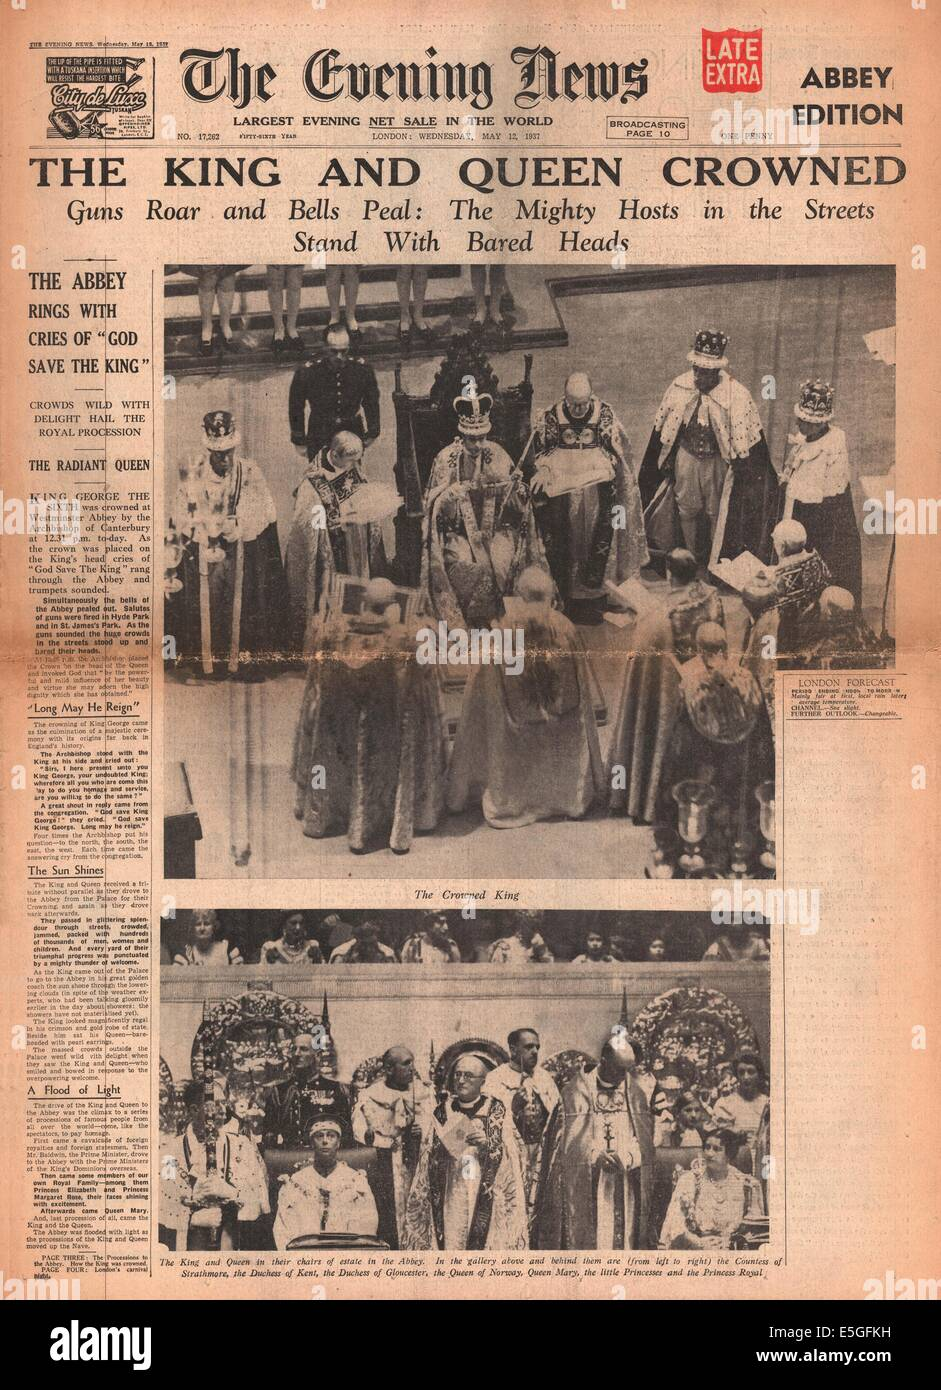 1937 The Evening News front page reporting coronation of King George